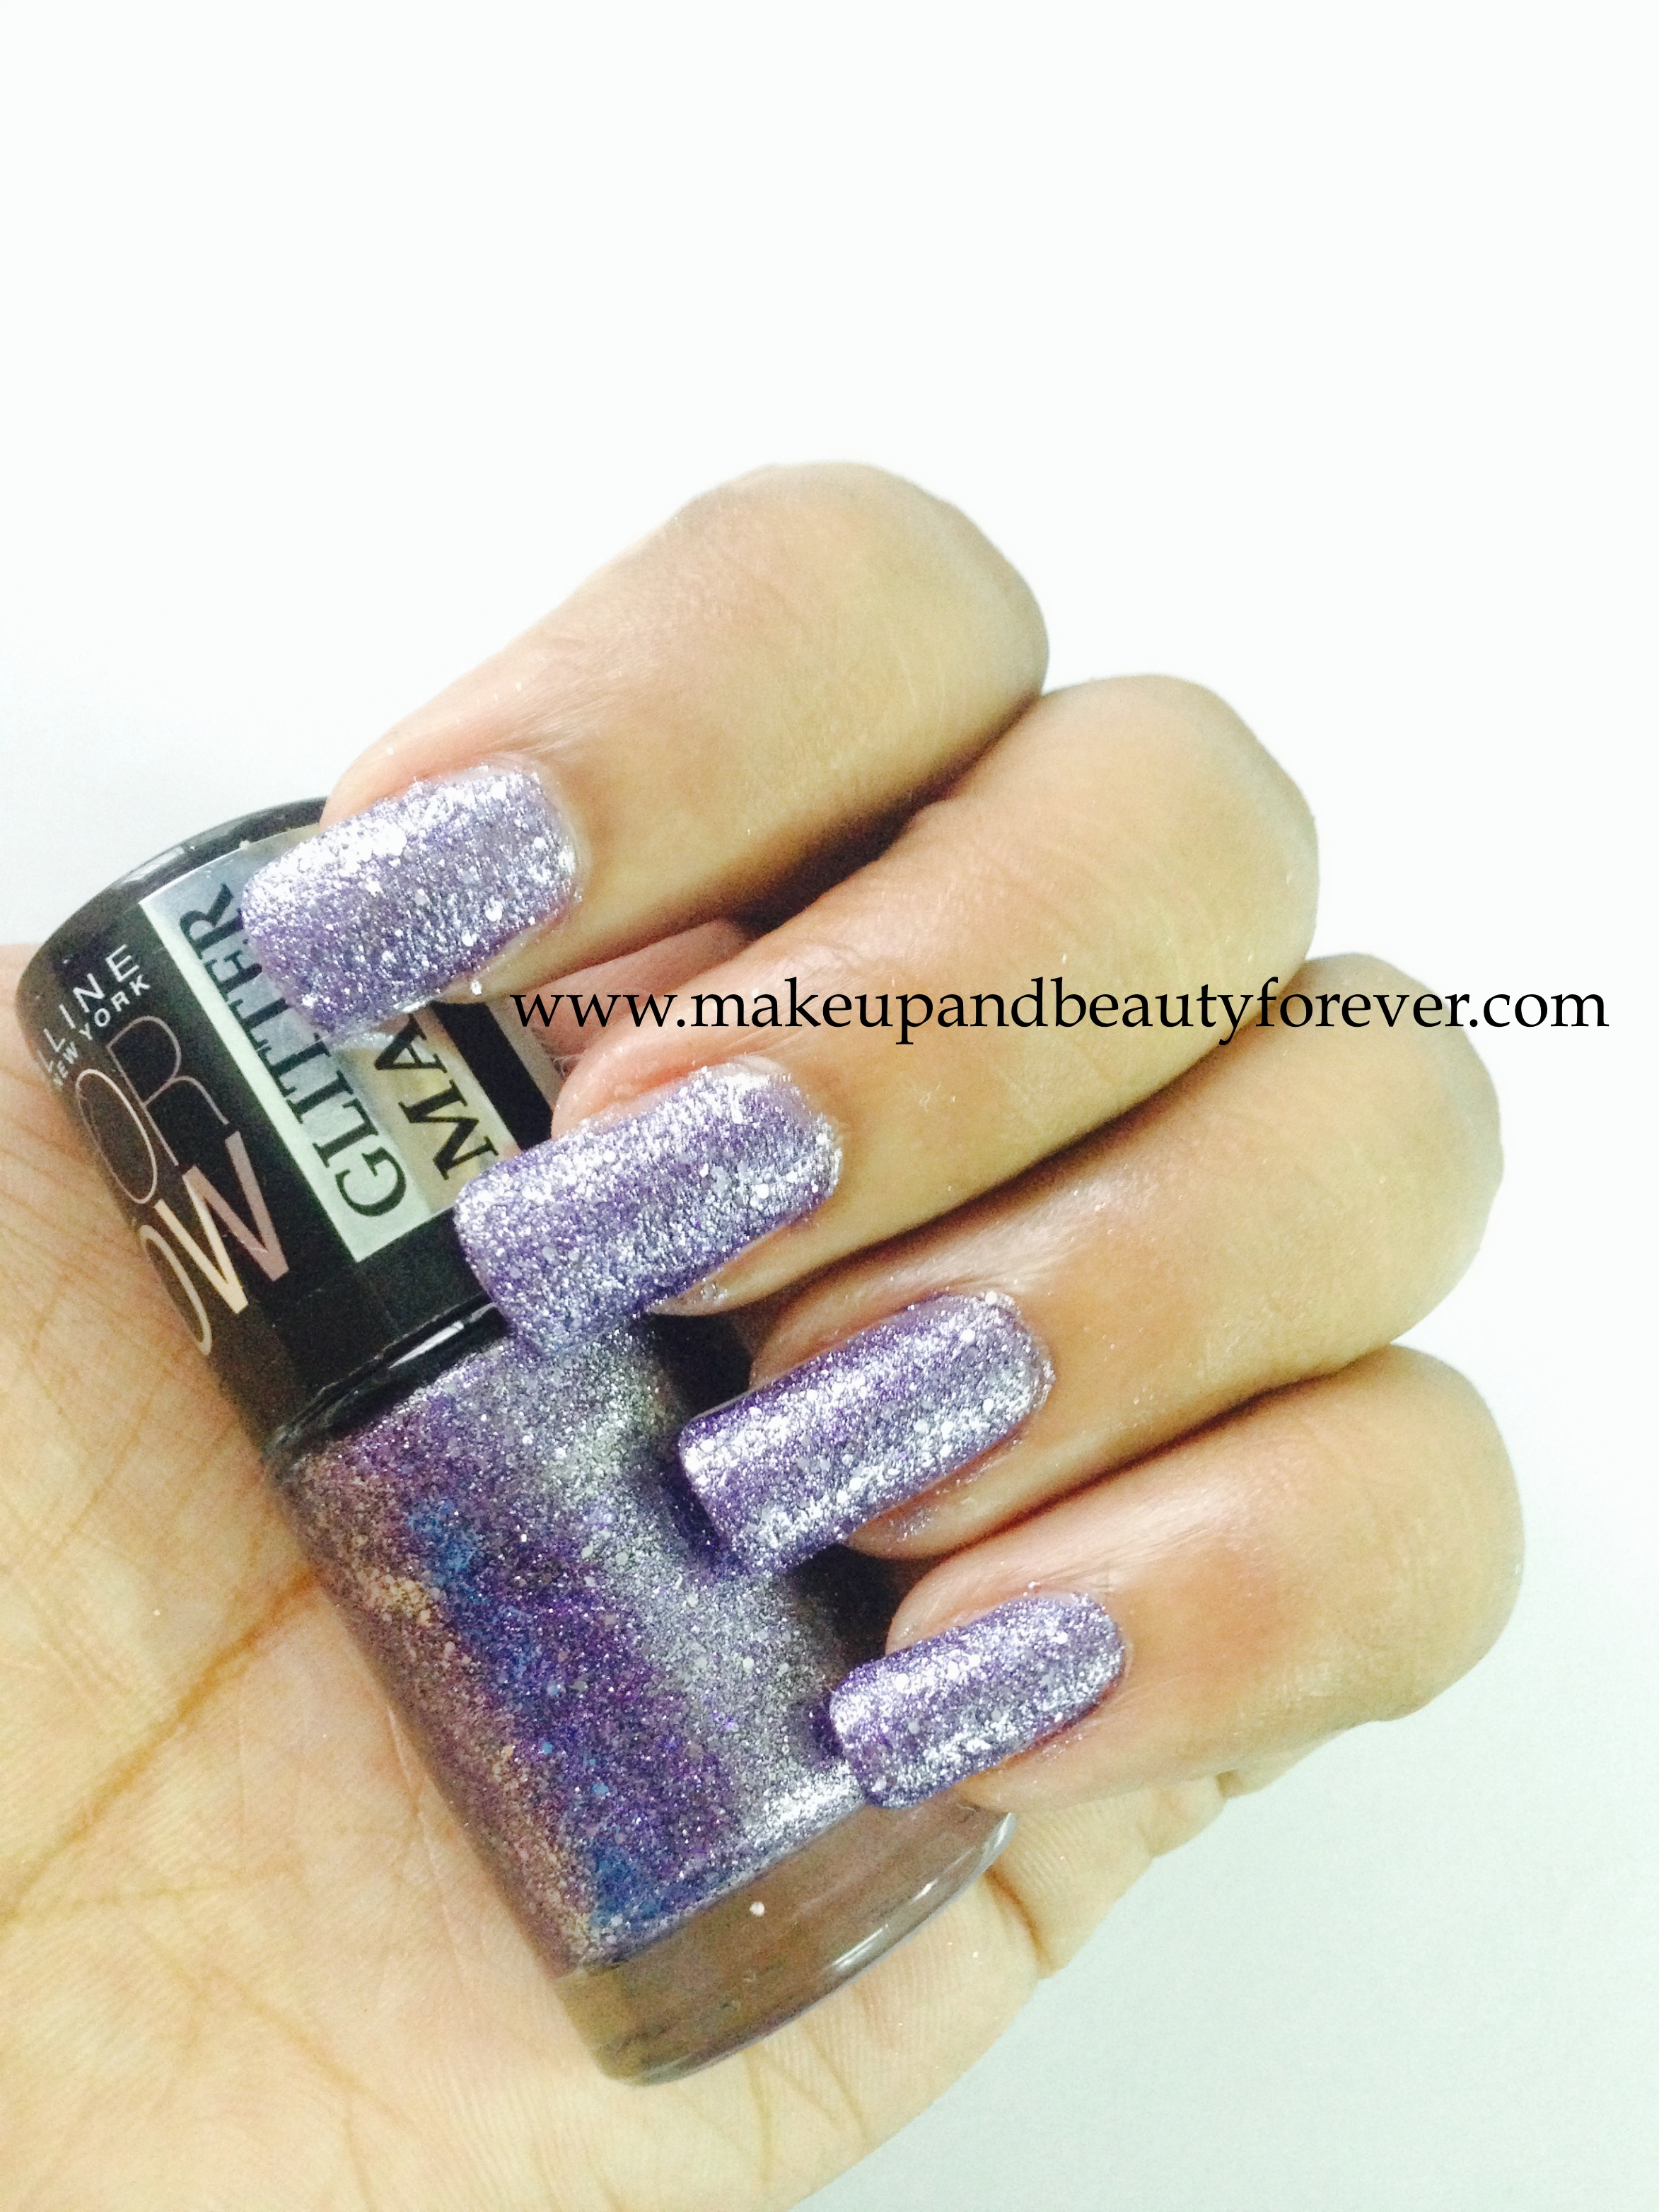 All Maybelline Colorshow Glitter Mania Nail Paints Review